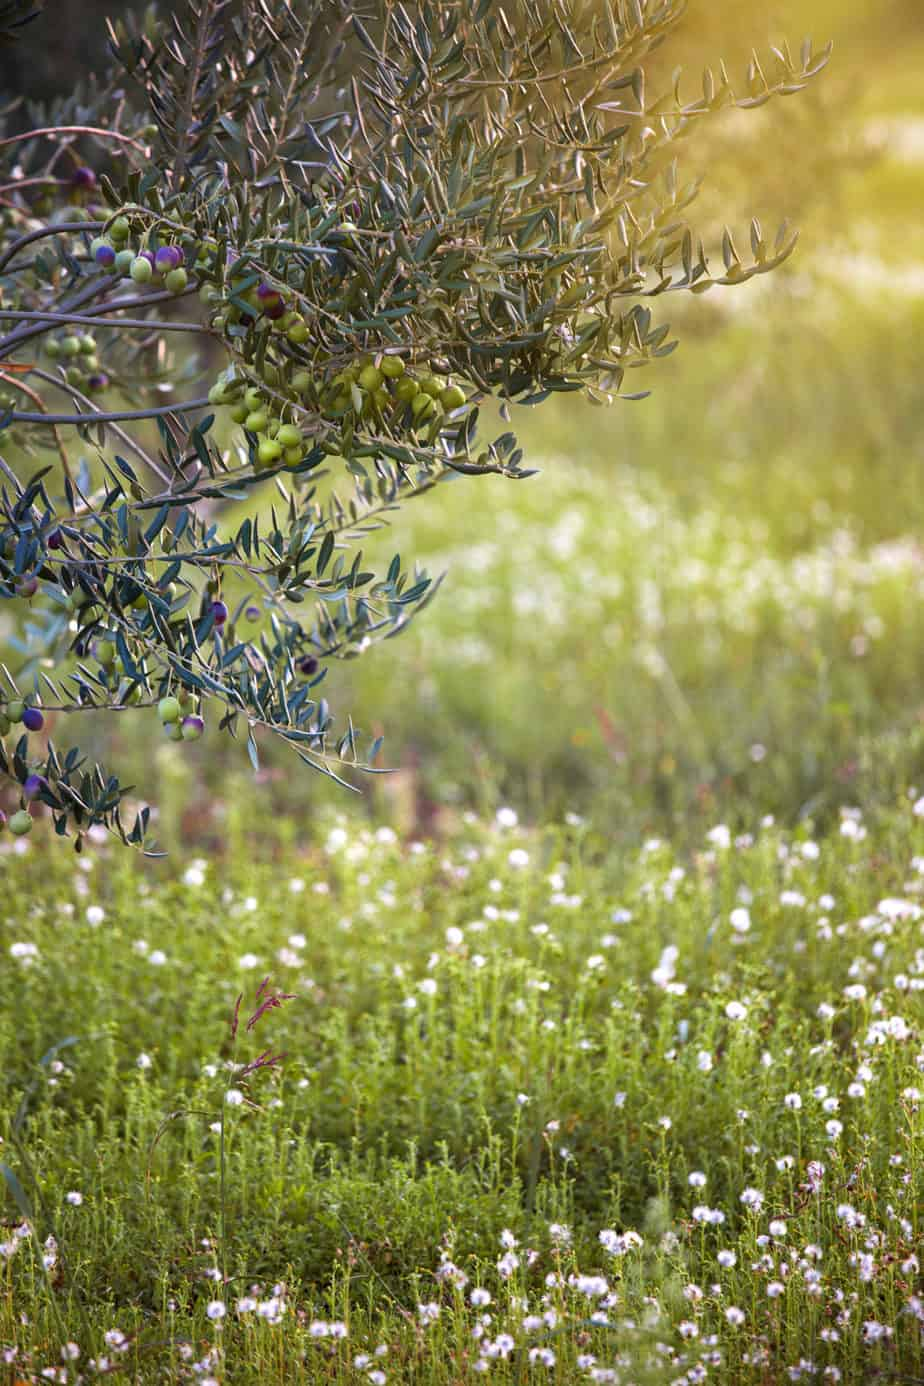 Organic Olive grove with blooming flowers